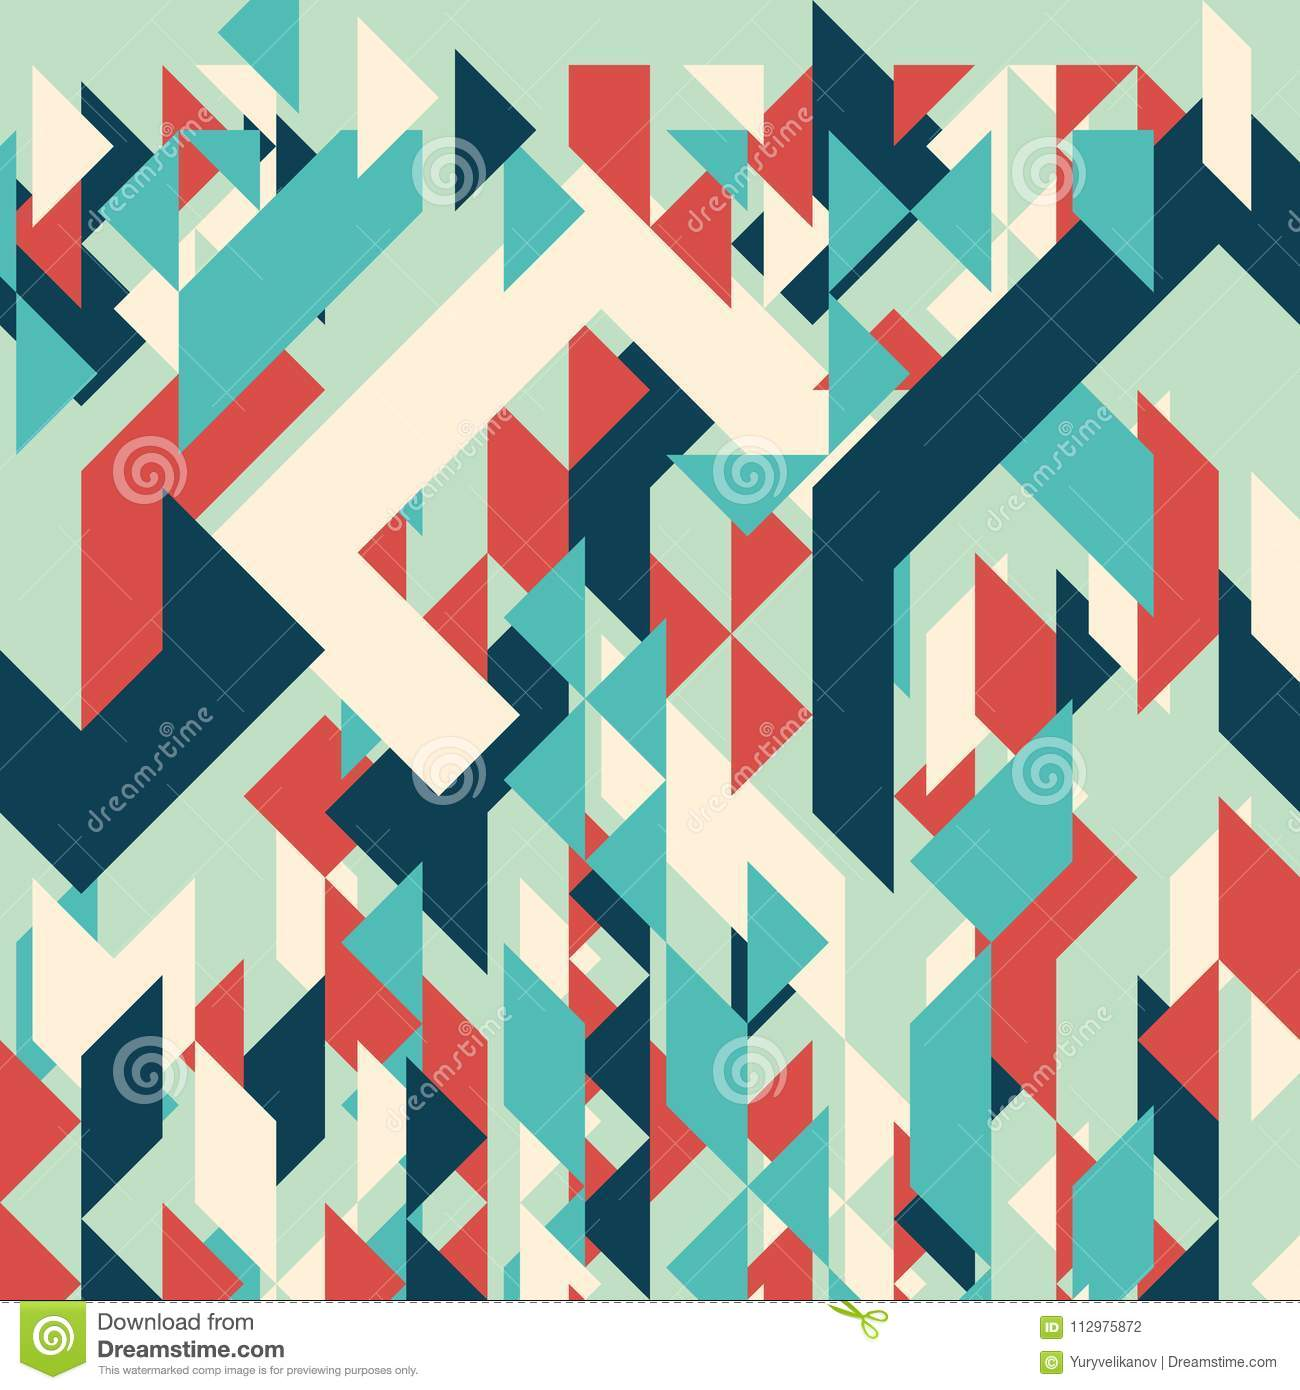 Abstract geometric background. Modern overlapping small triangles.